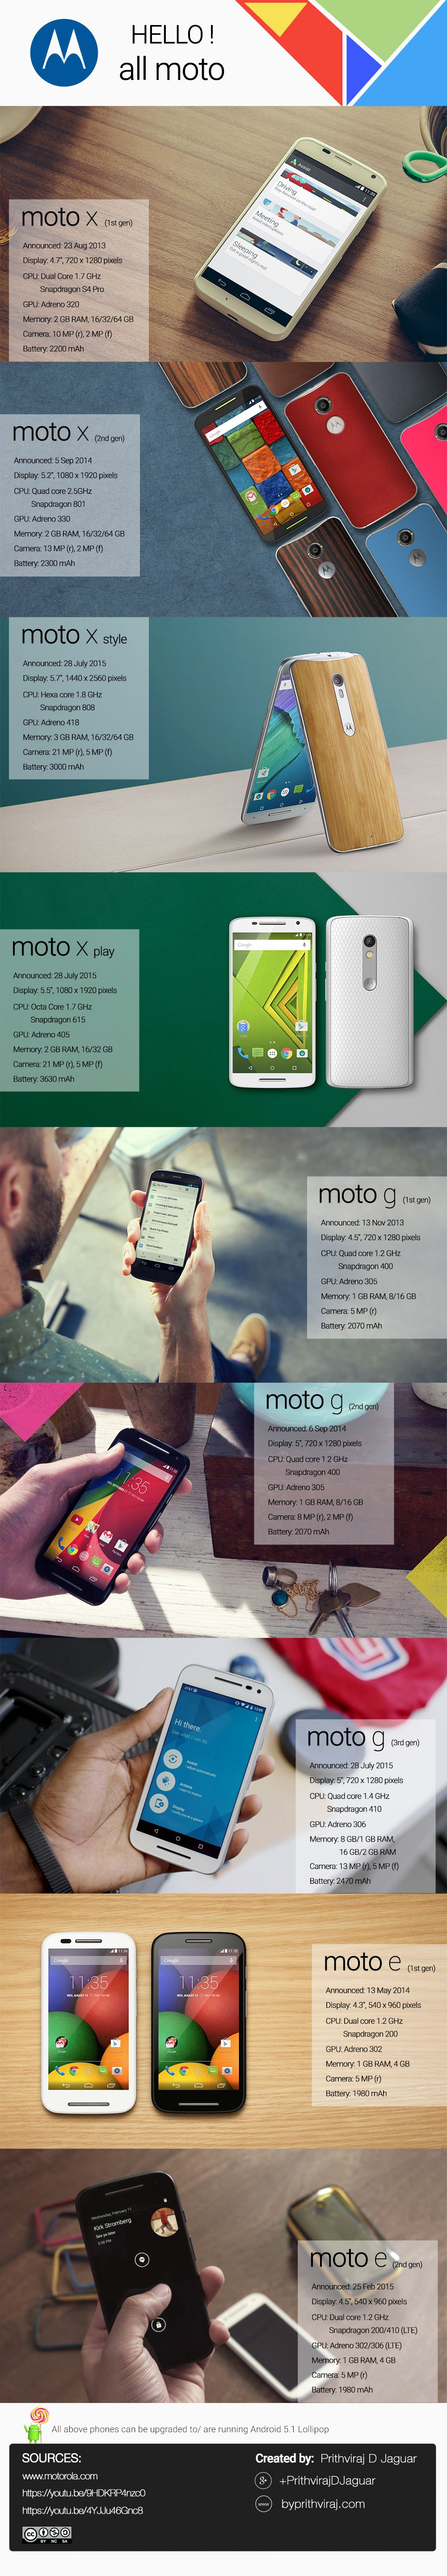 Hello! all moto #infographic